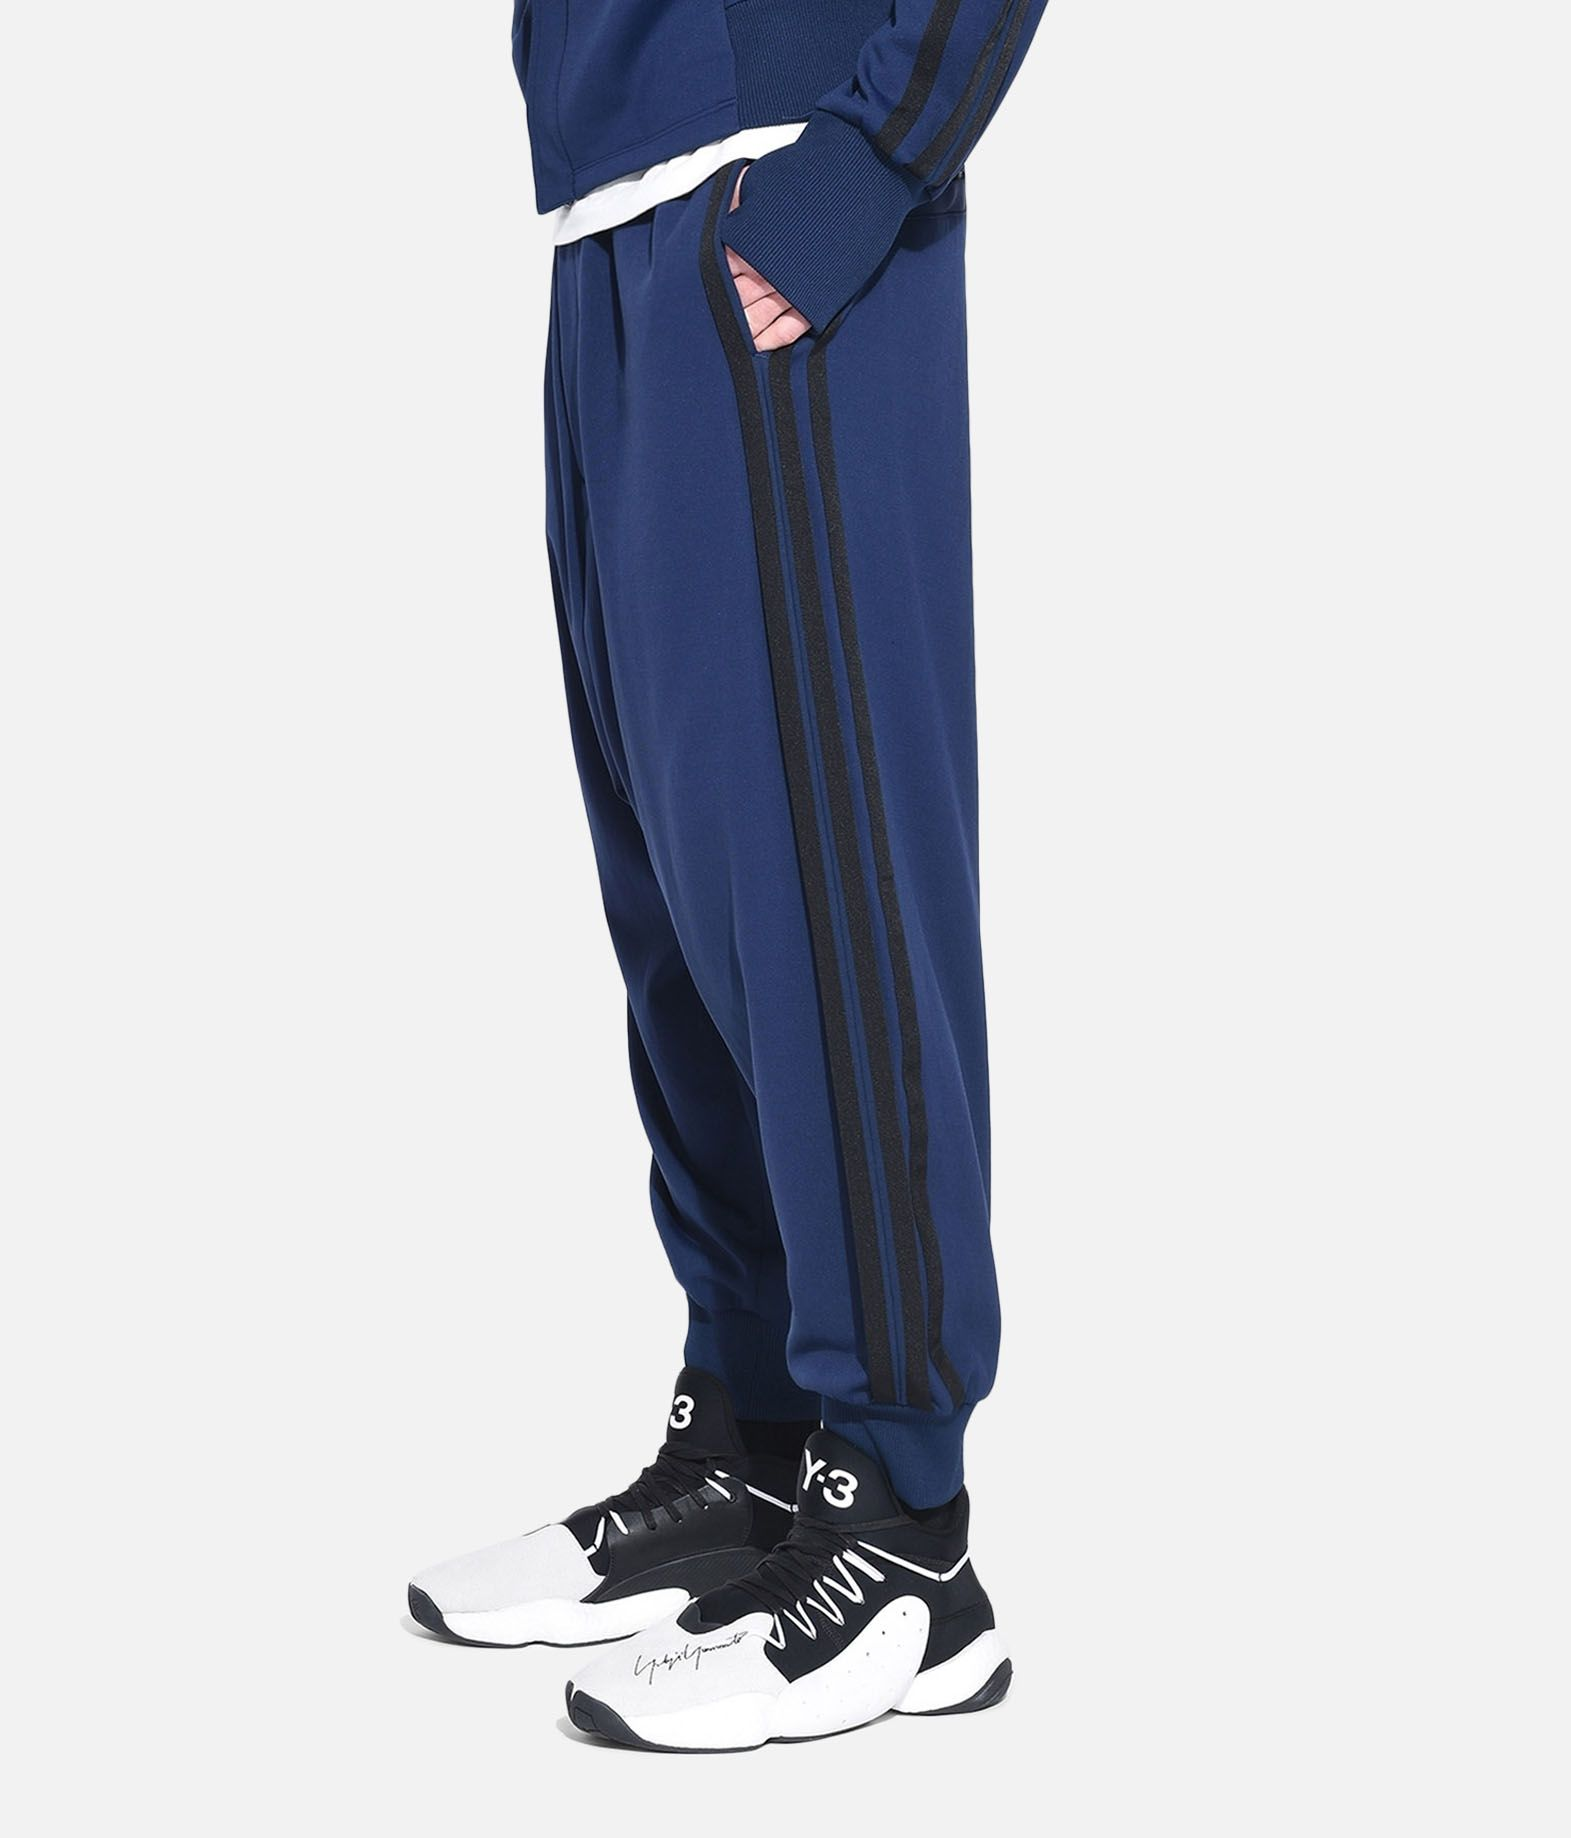 Y-3 Y-3 3-Stripes Selvedge Matte Track Pants Track pant Man e